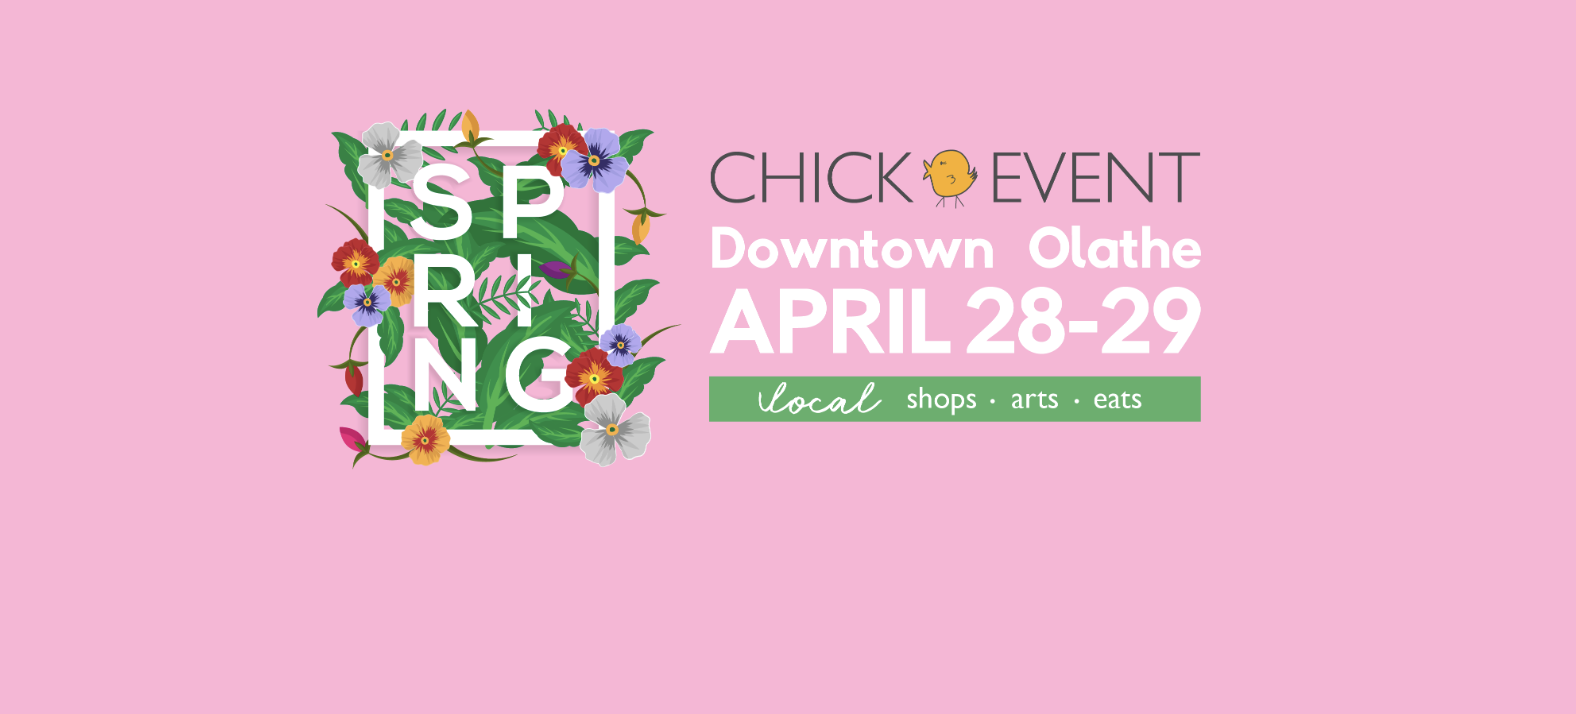 ChickEvent2018.png